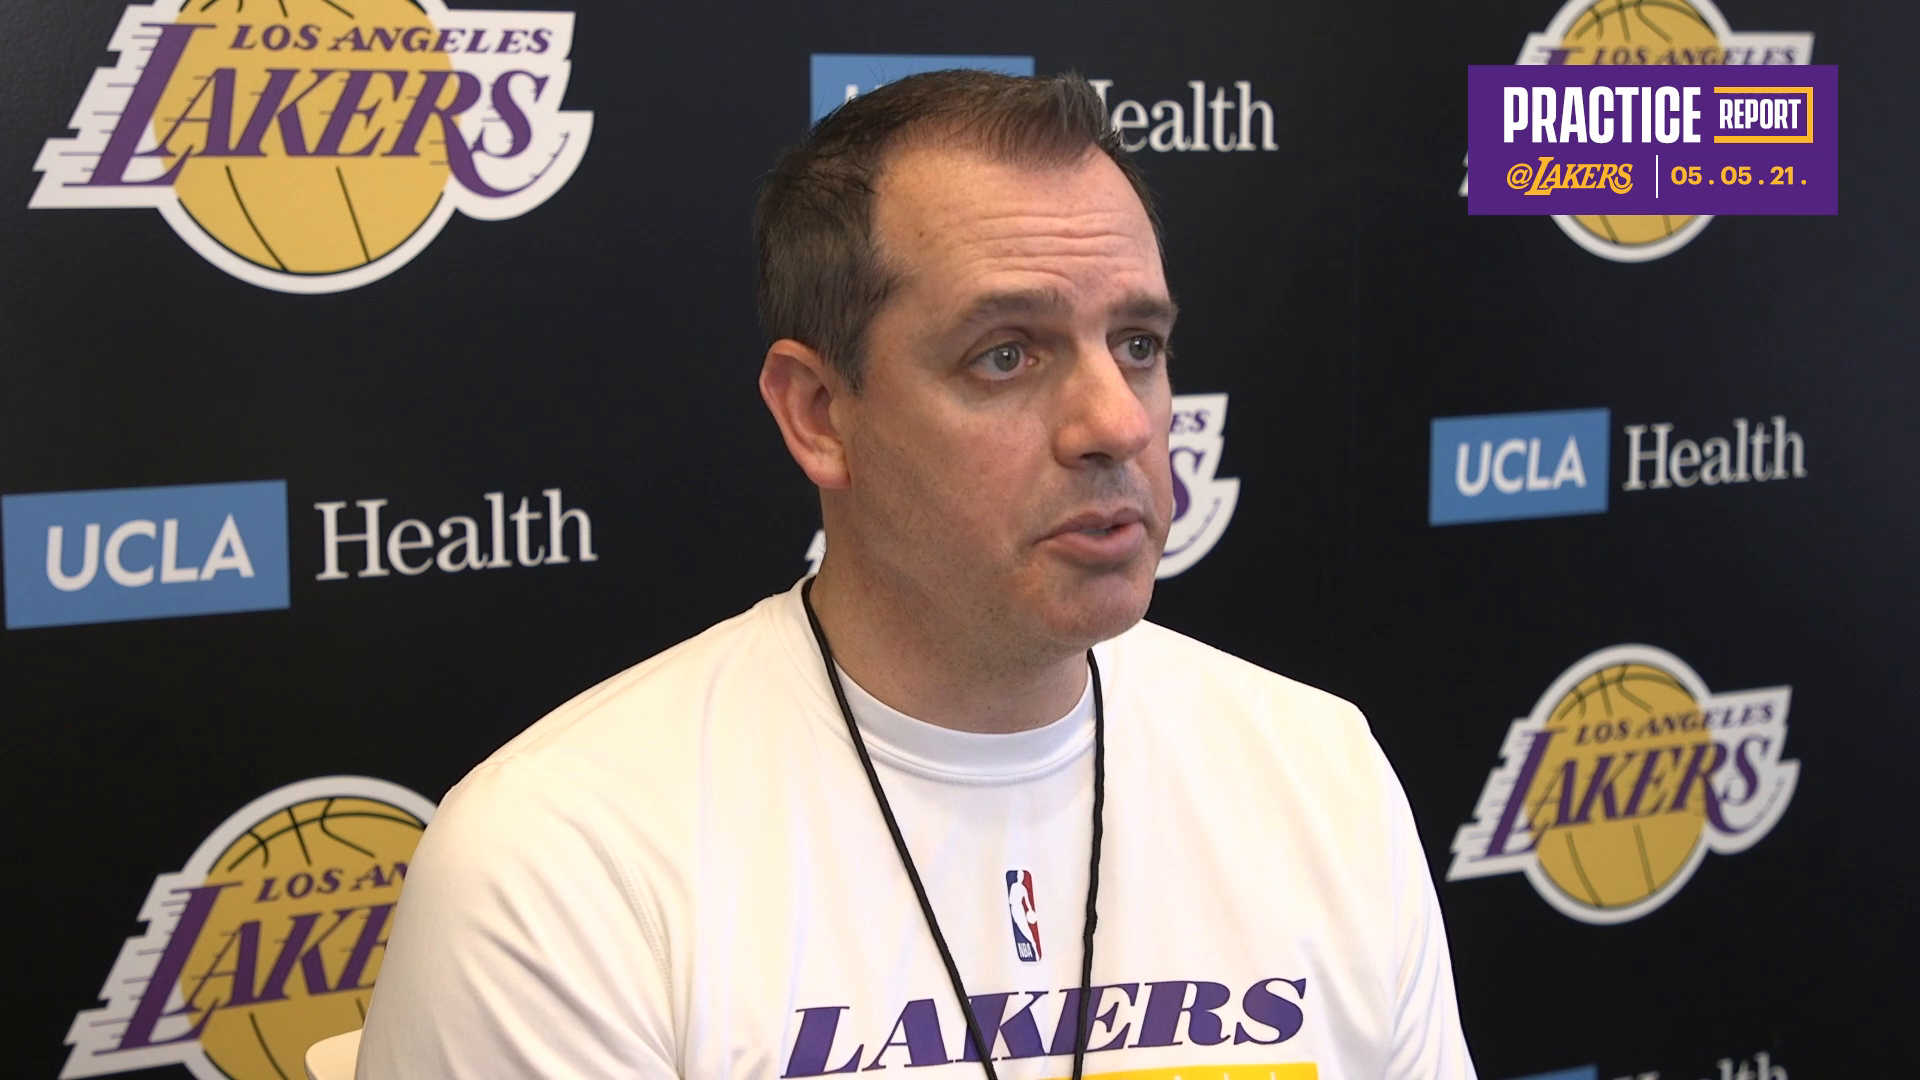 Lakers Practice Report: Frank Vogel (5/5/21)